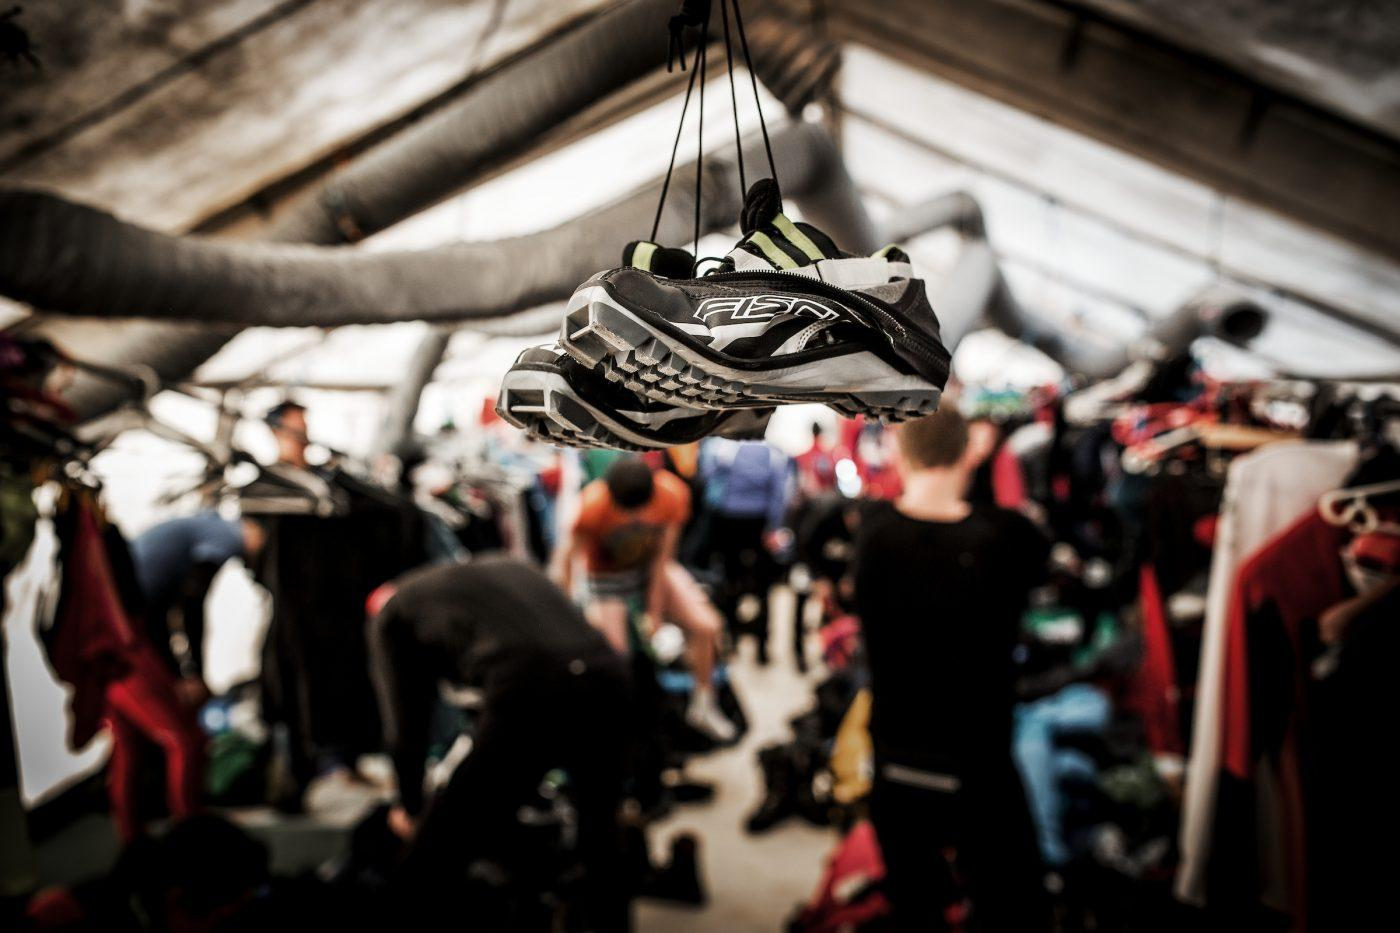 Pair of shoes waiting to be changed by a skier during Arctic Circle Race